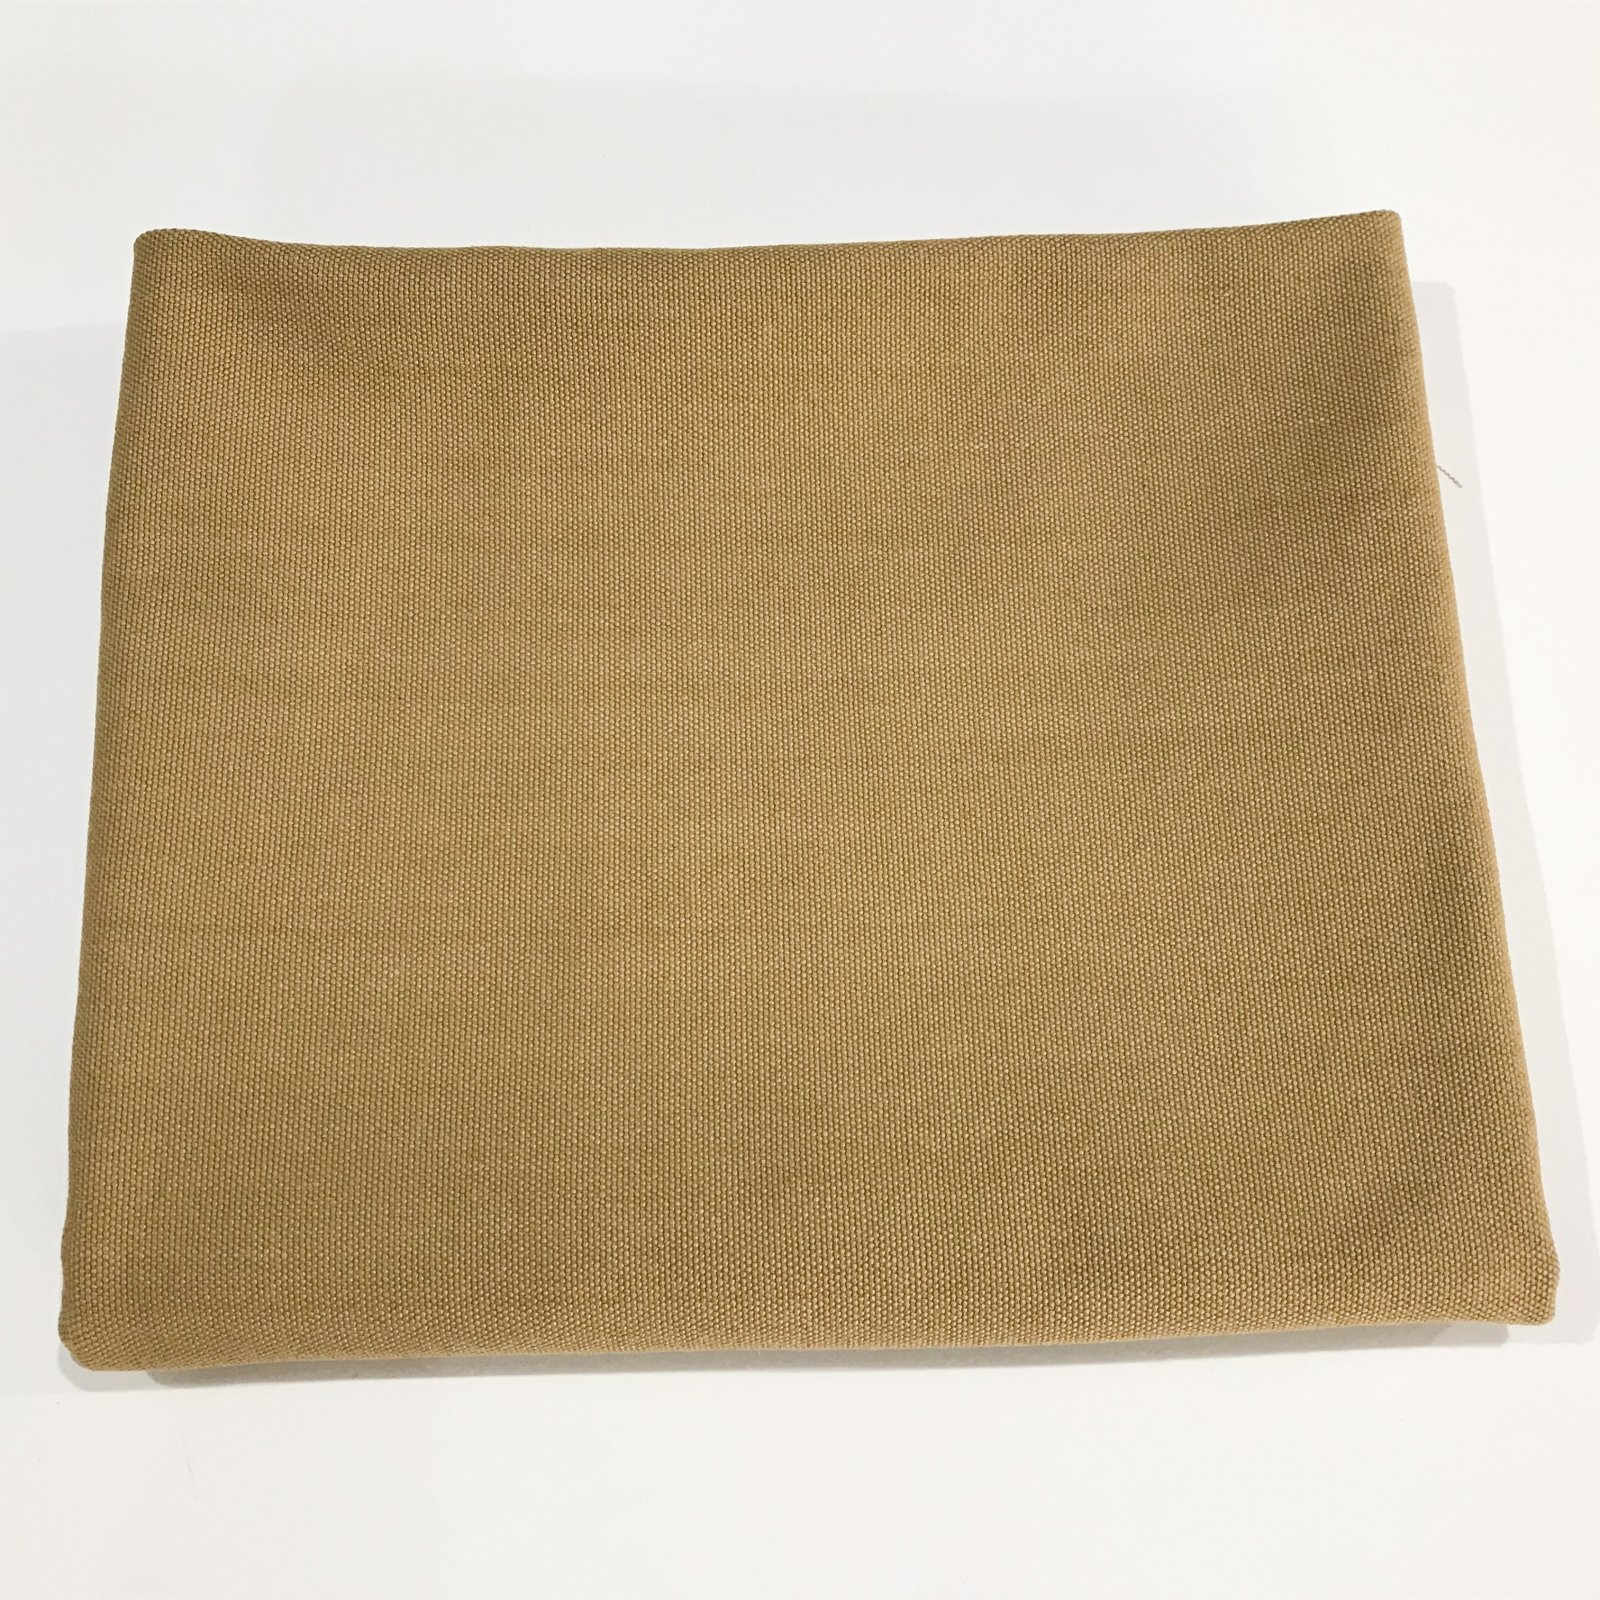 1 3/4 yards - Heavy Weight Bubble Linen - Peanut